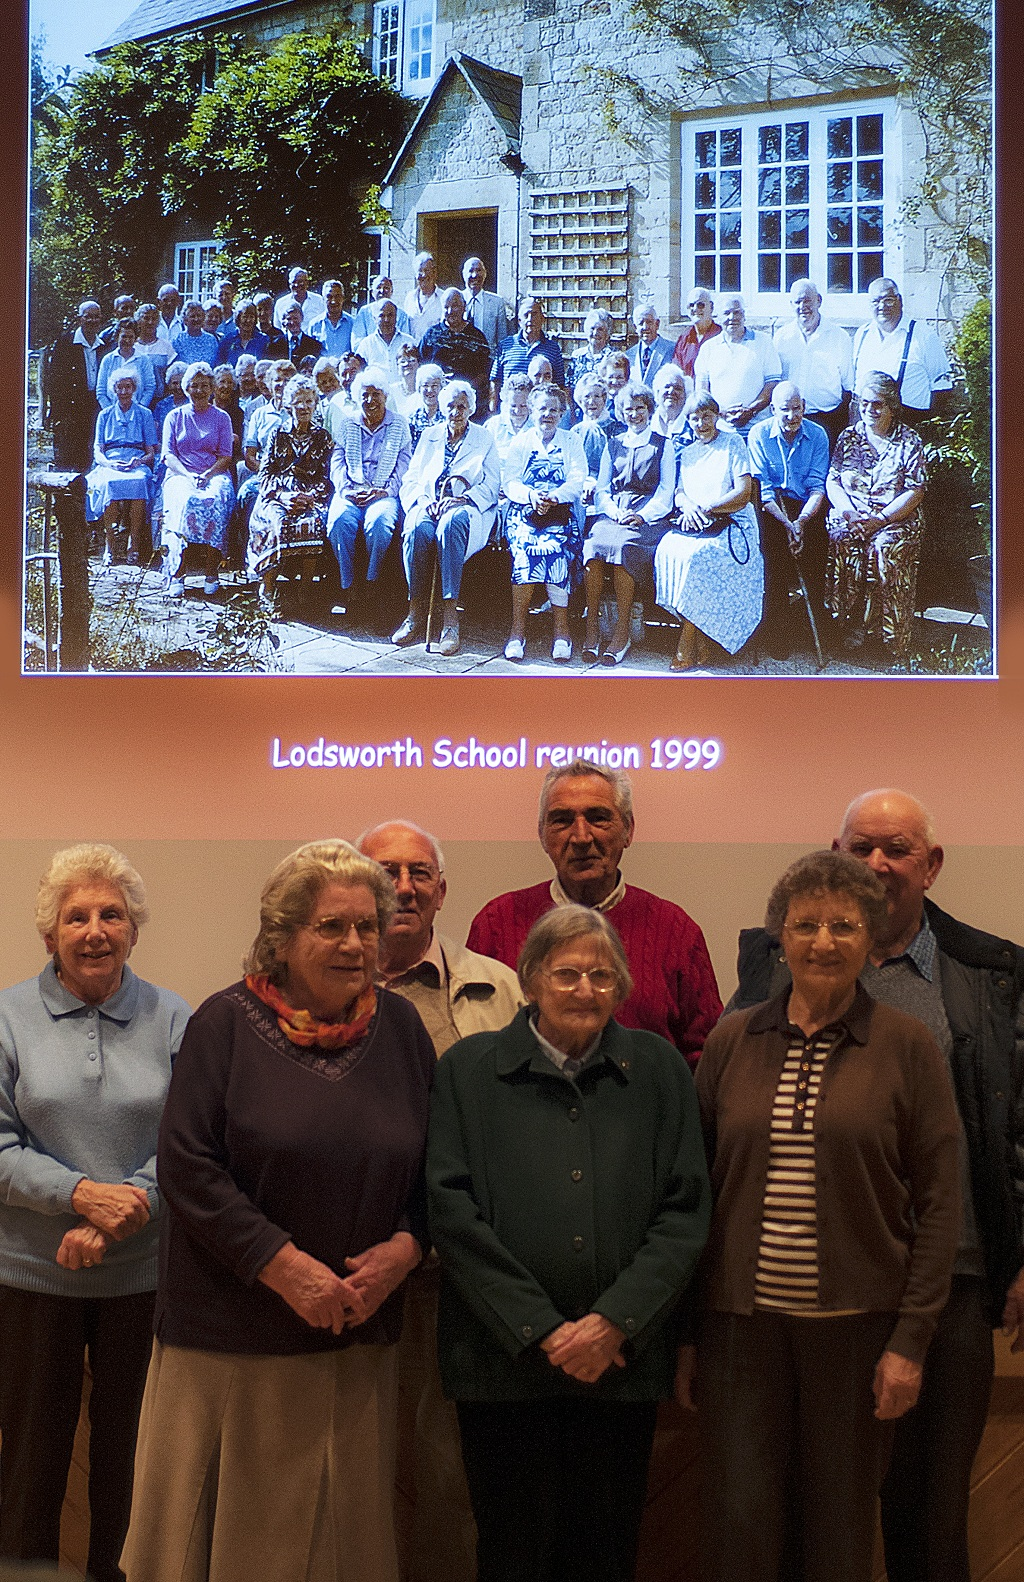 Rosemary Hyde, Sally Hill, John Wakeford, Nellie Brown, Brian Baker, Pauline Enticknap & Ernie Hill, with the backdrop of Stephen Morley's 1999 Lodsworth School reunion photo behind them